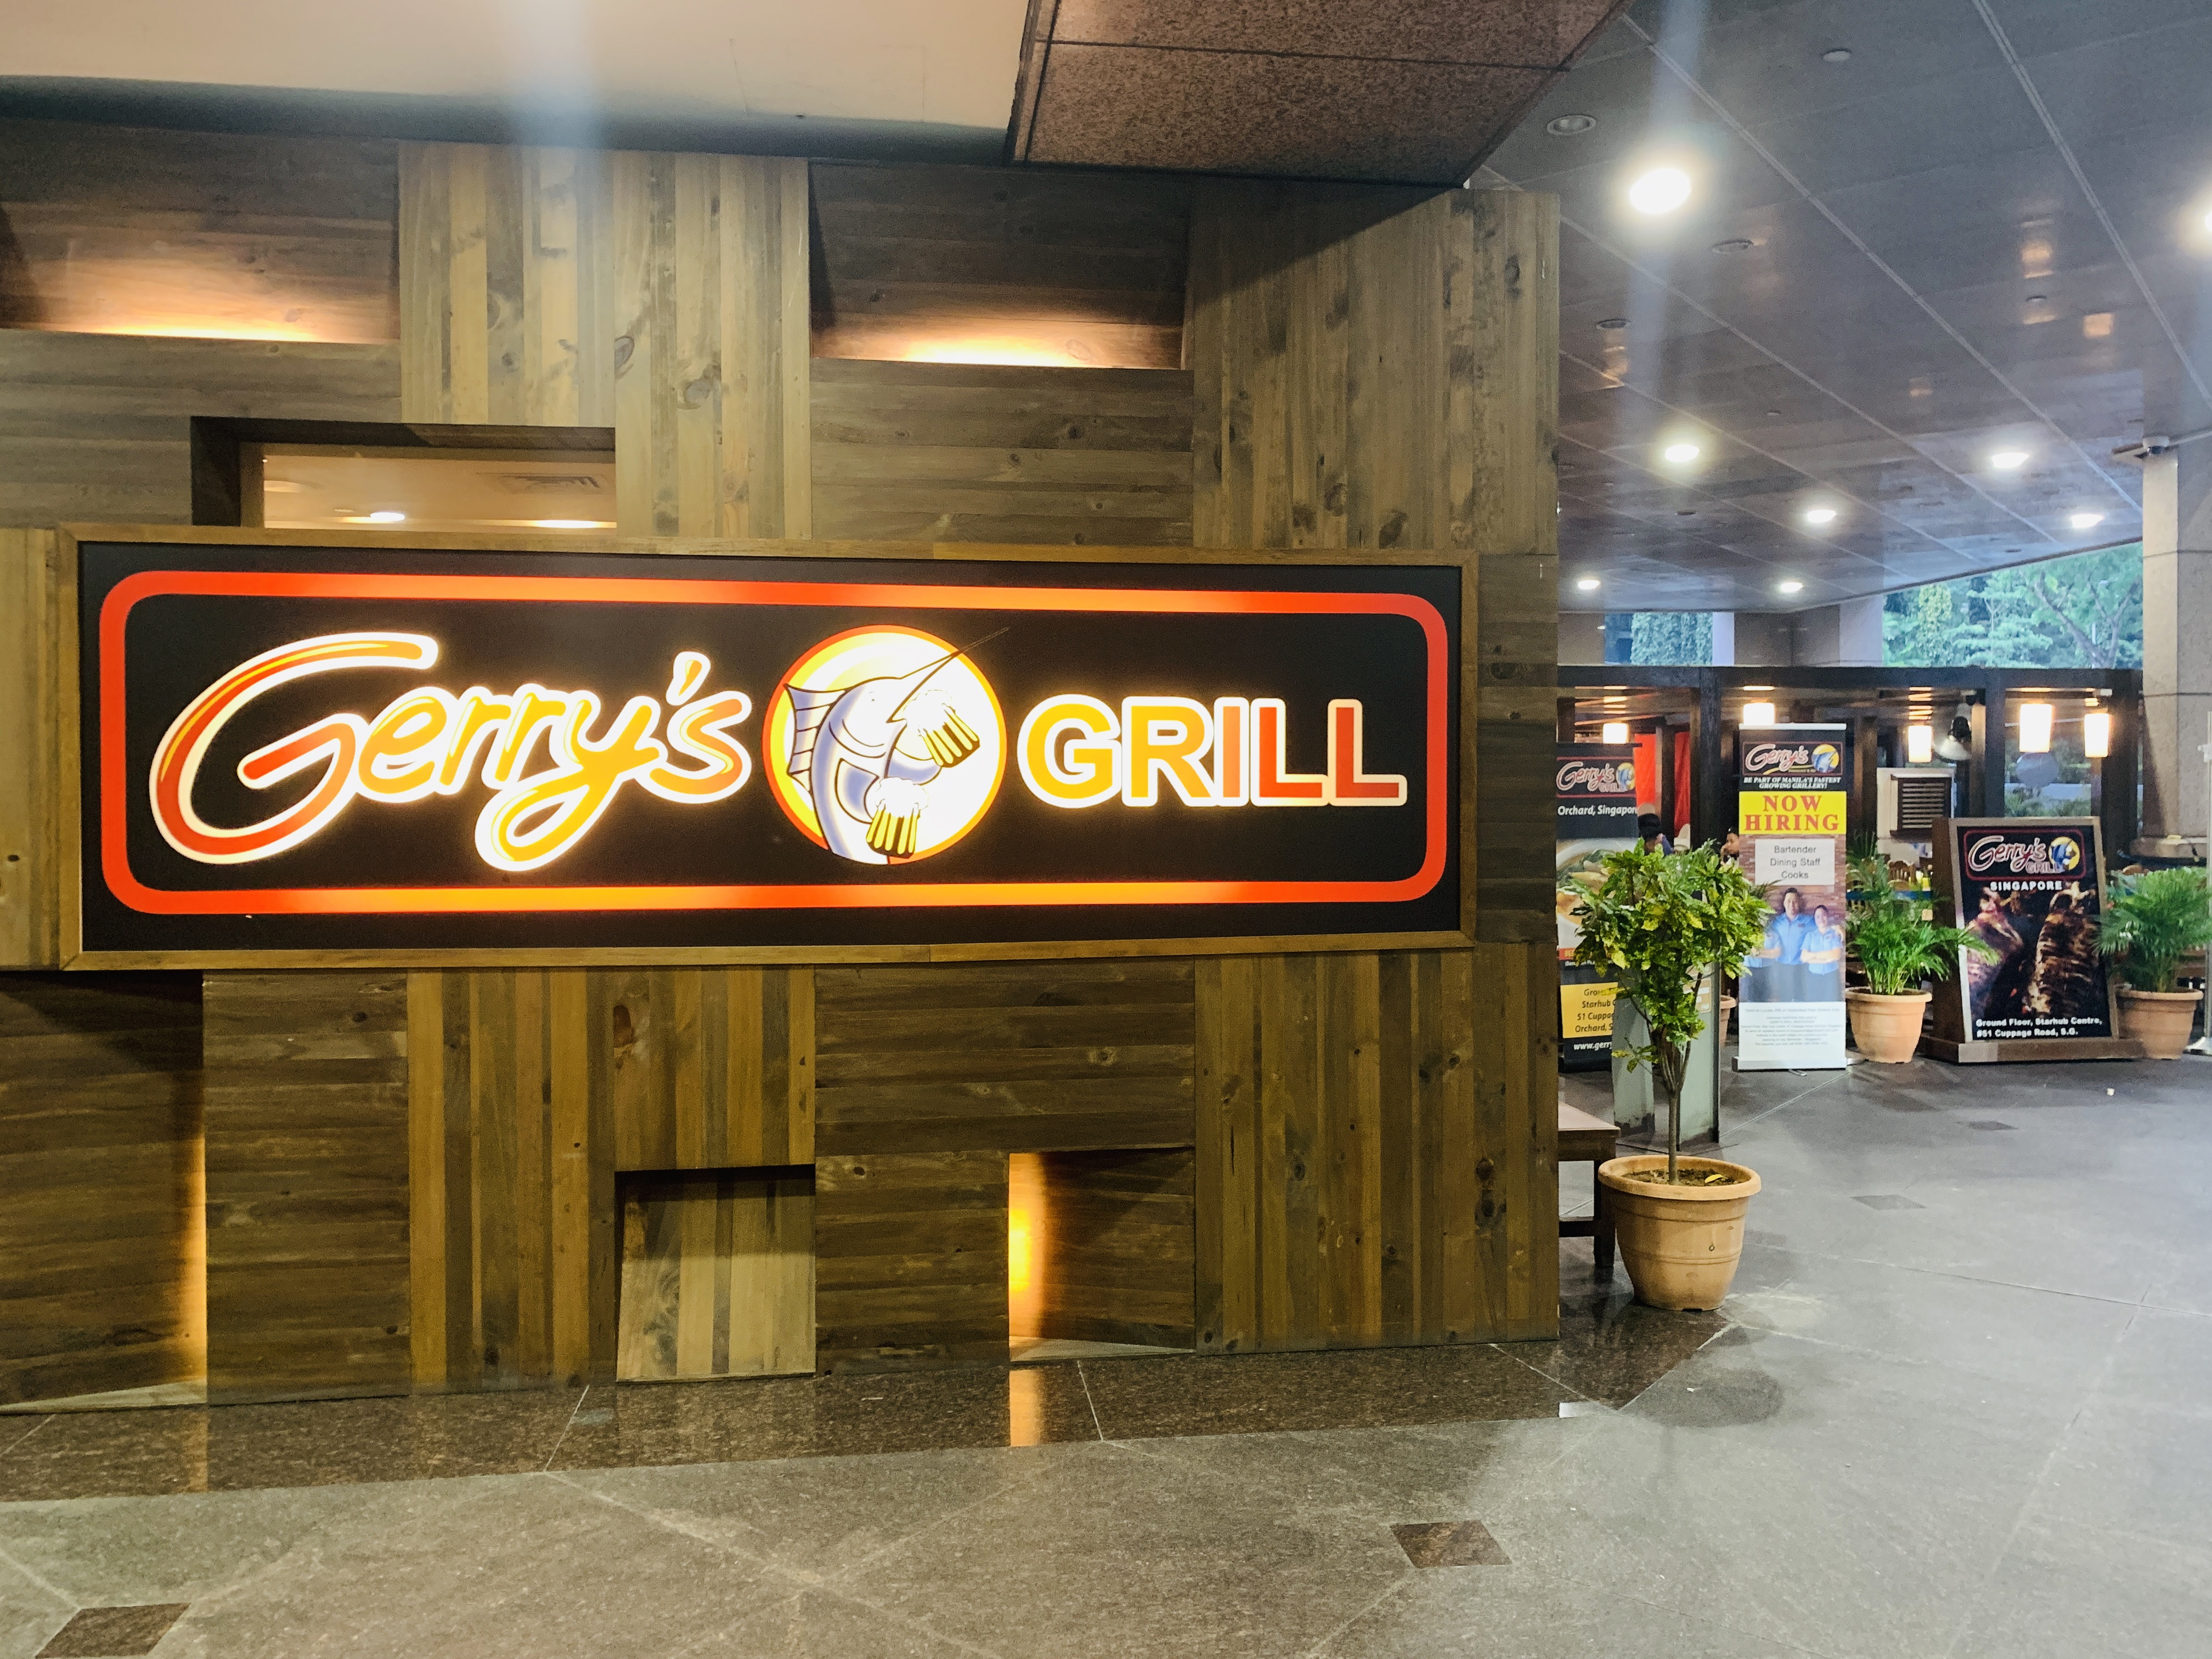 Gerrys Grill - Restaurant Front